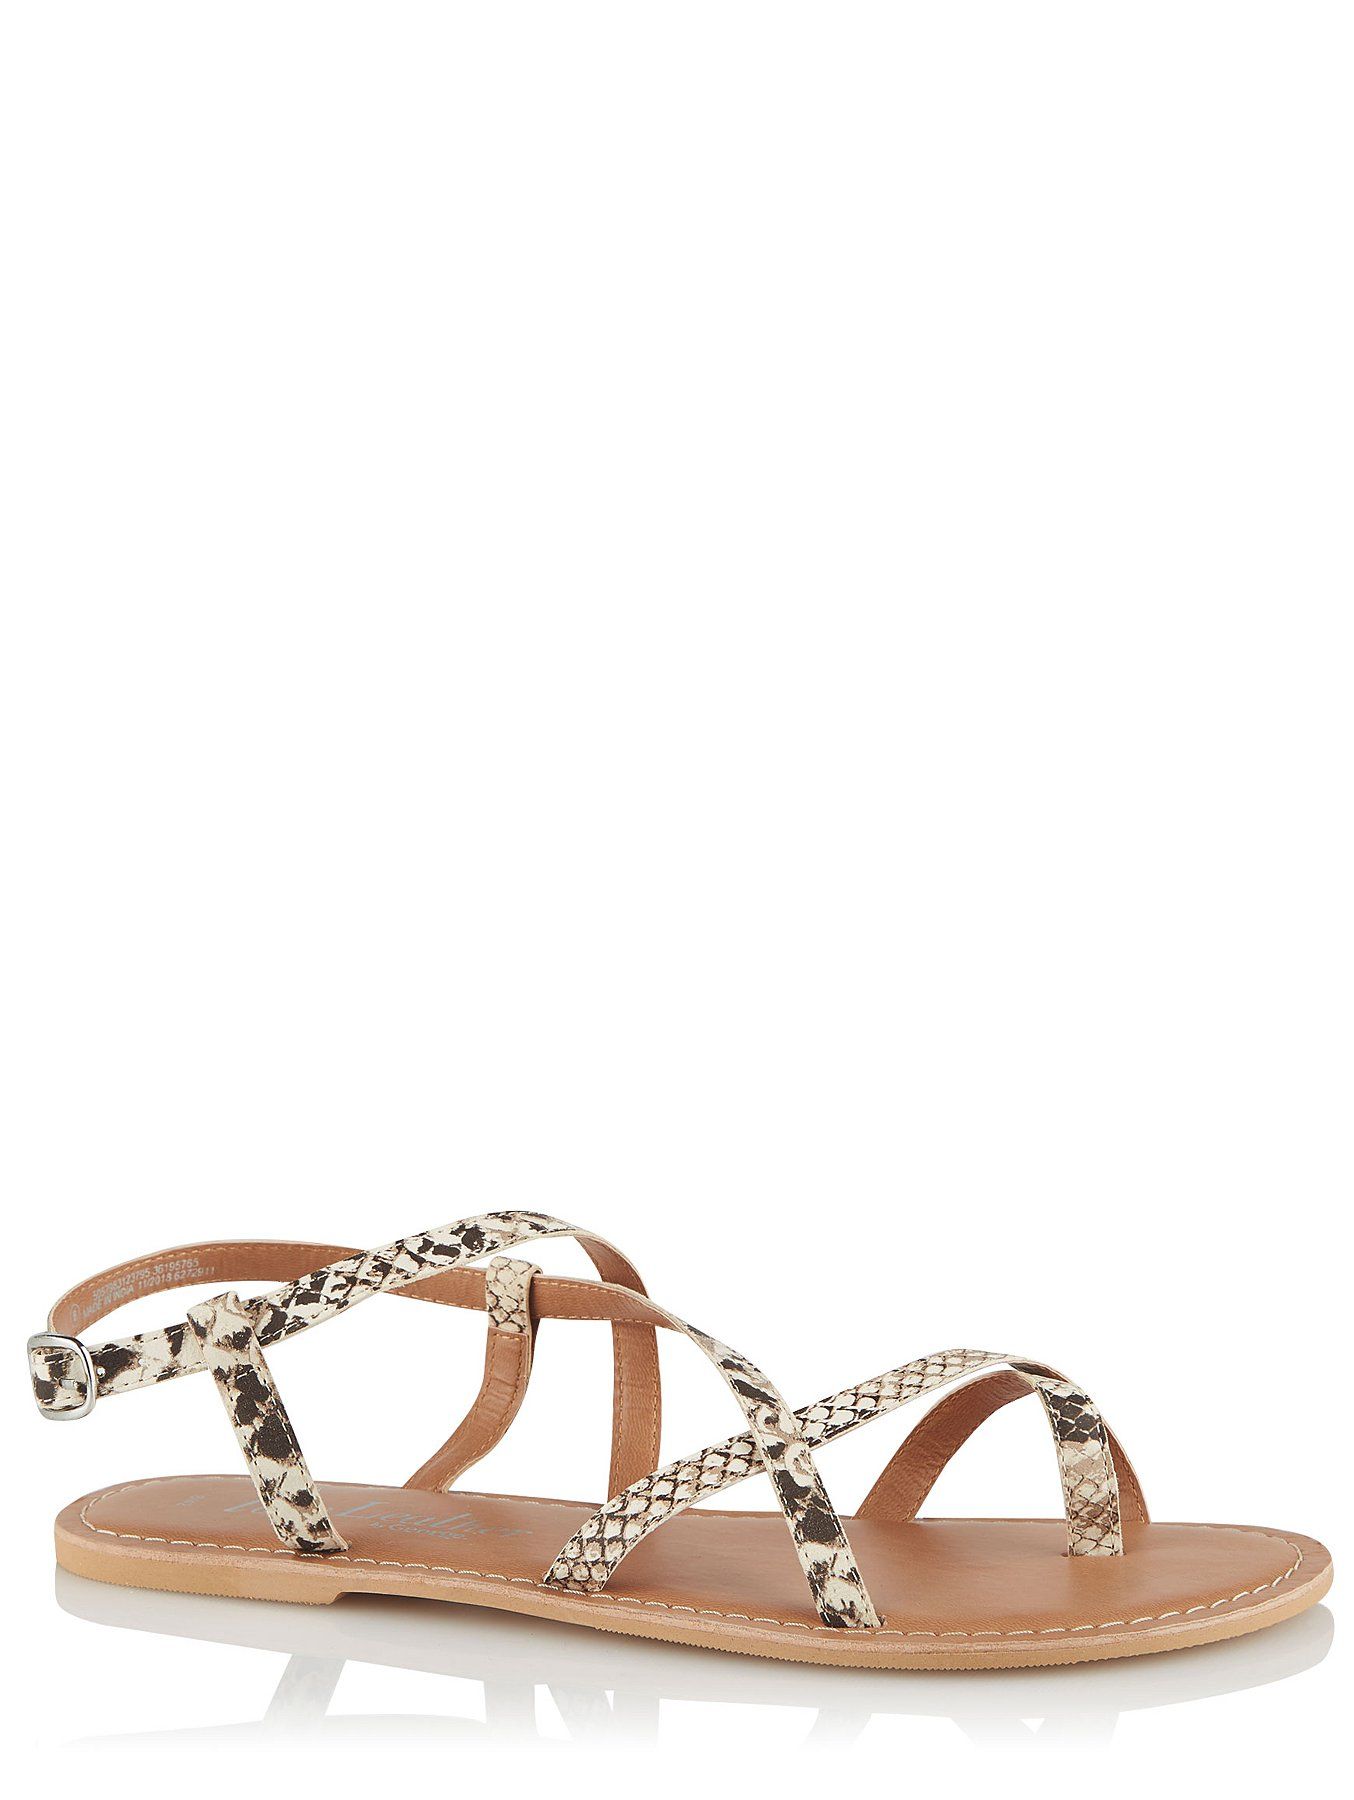 343beb4f3a Snakeskin Effect Leather Strappy Sandals